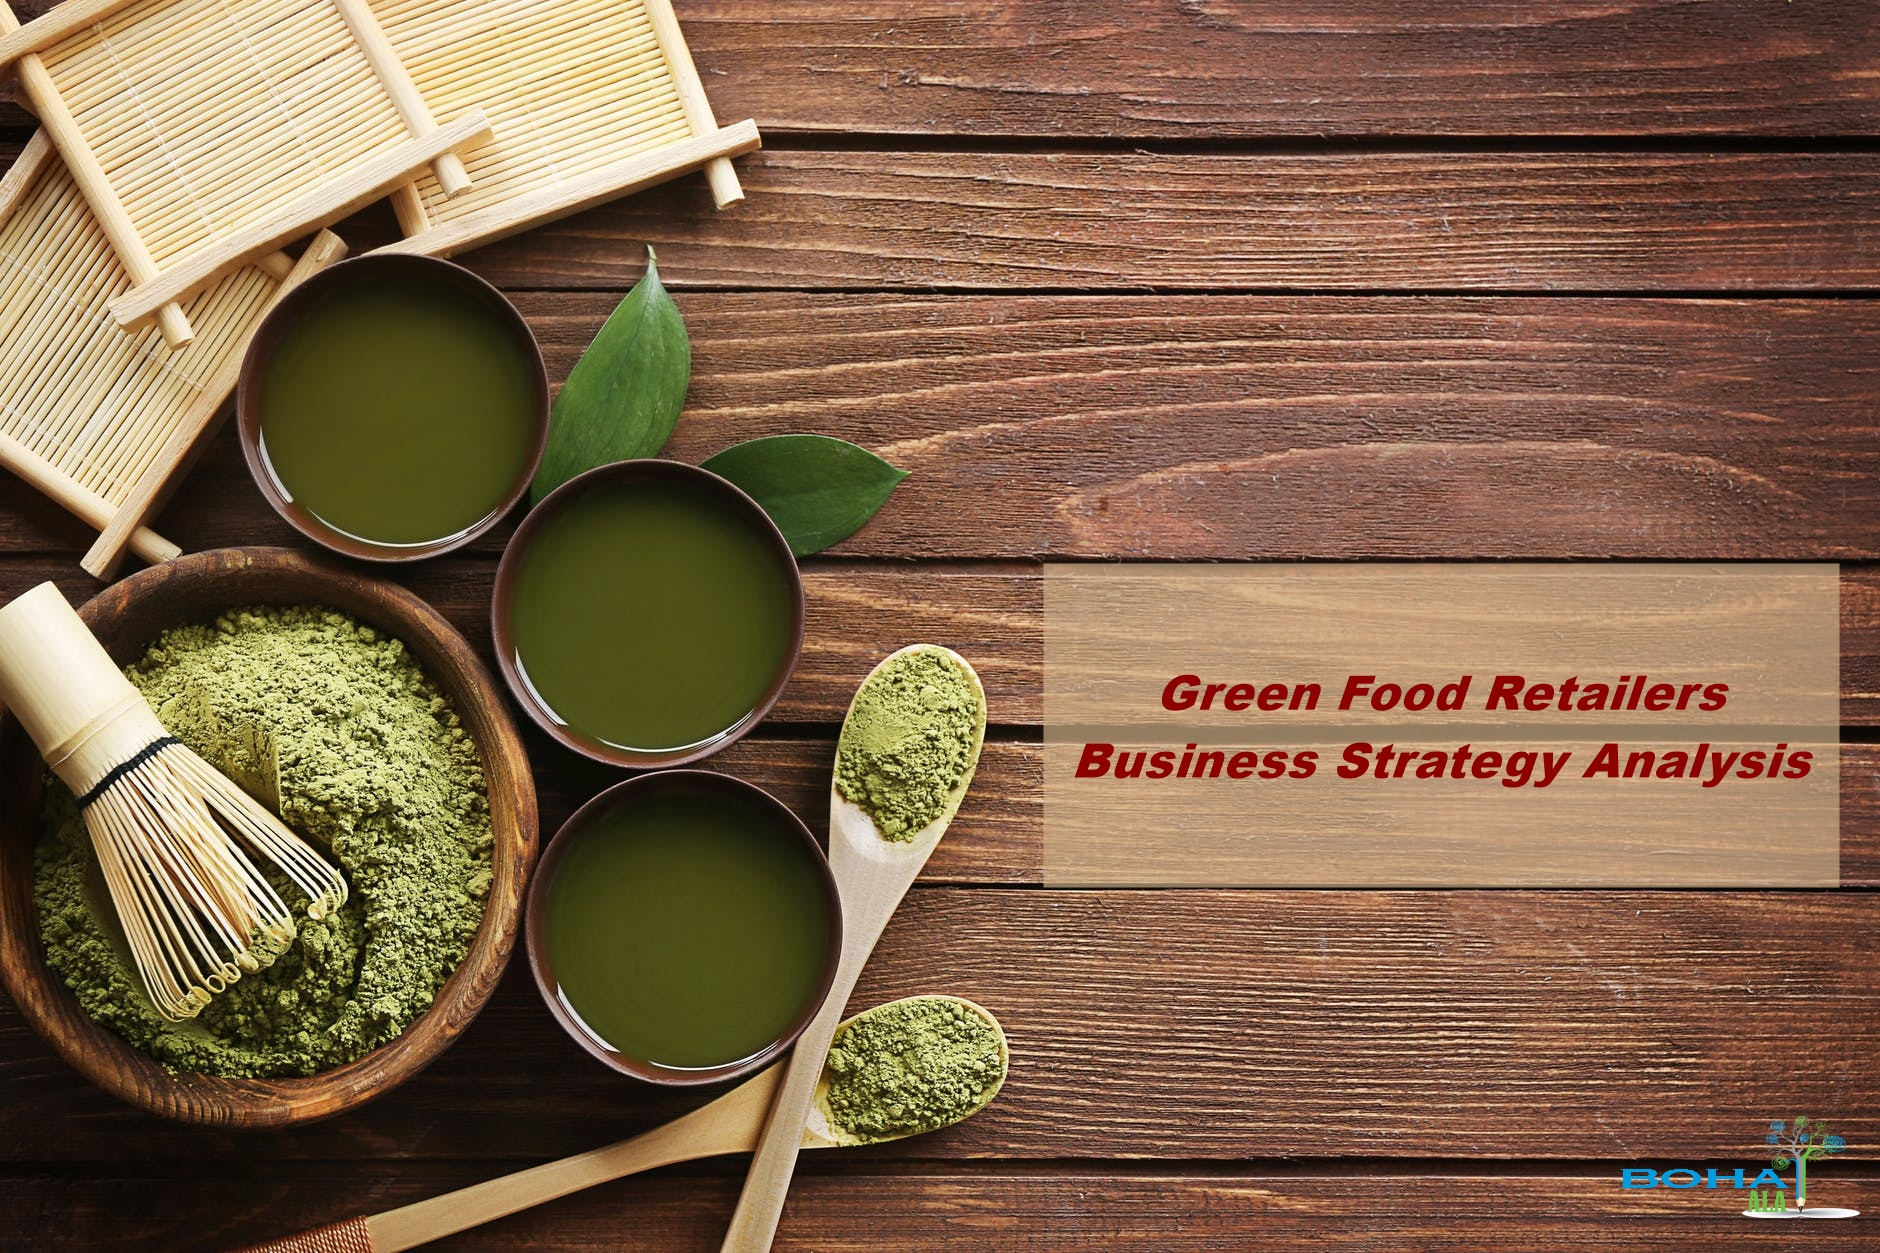 Green Food Retailers Business Strategy Analysis